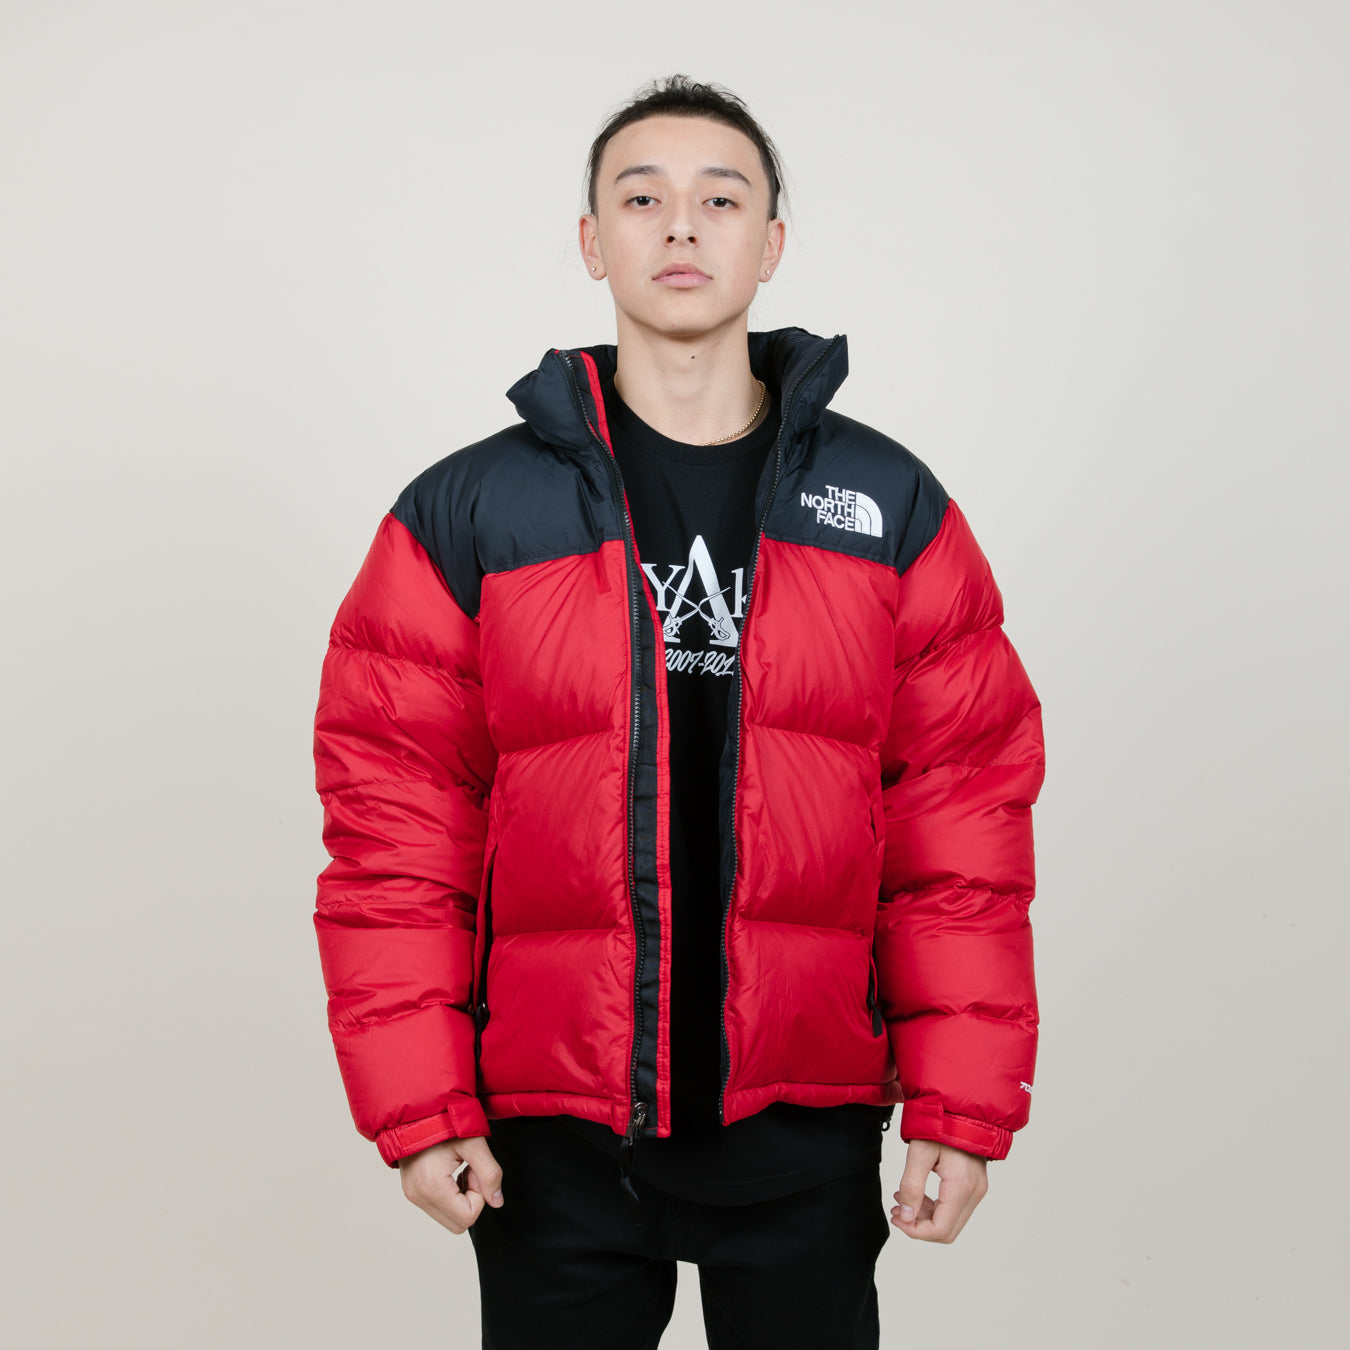 5f7578b140 The North Face Men's 1996 Retro Nuptse Jacket (Red/Black) - NewYakCity